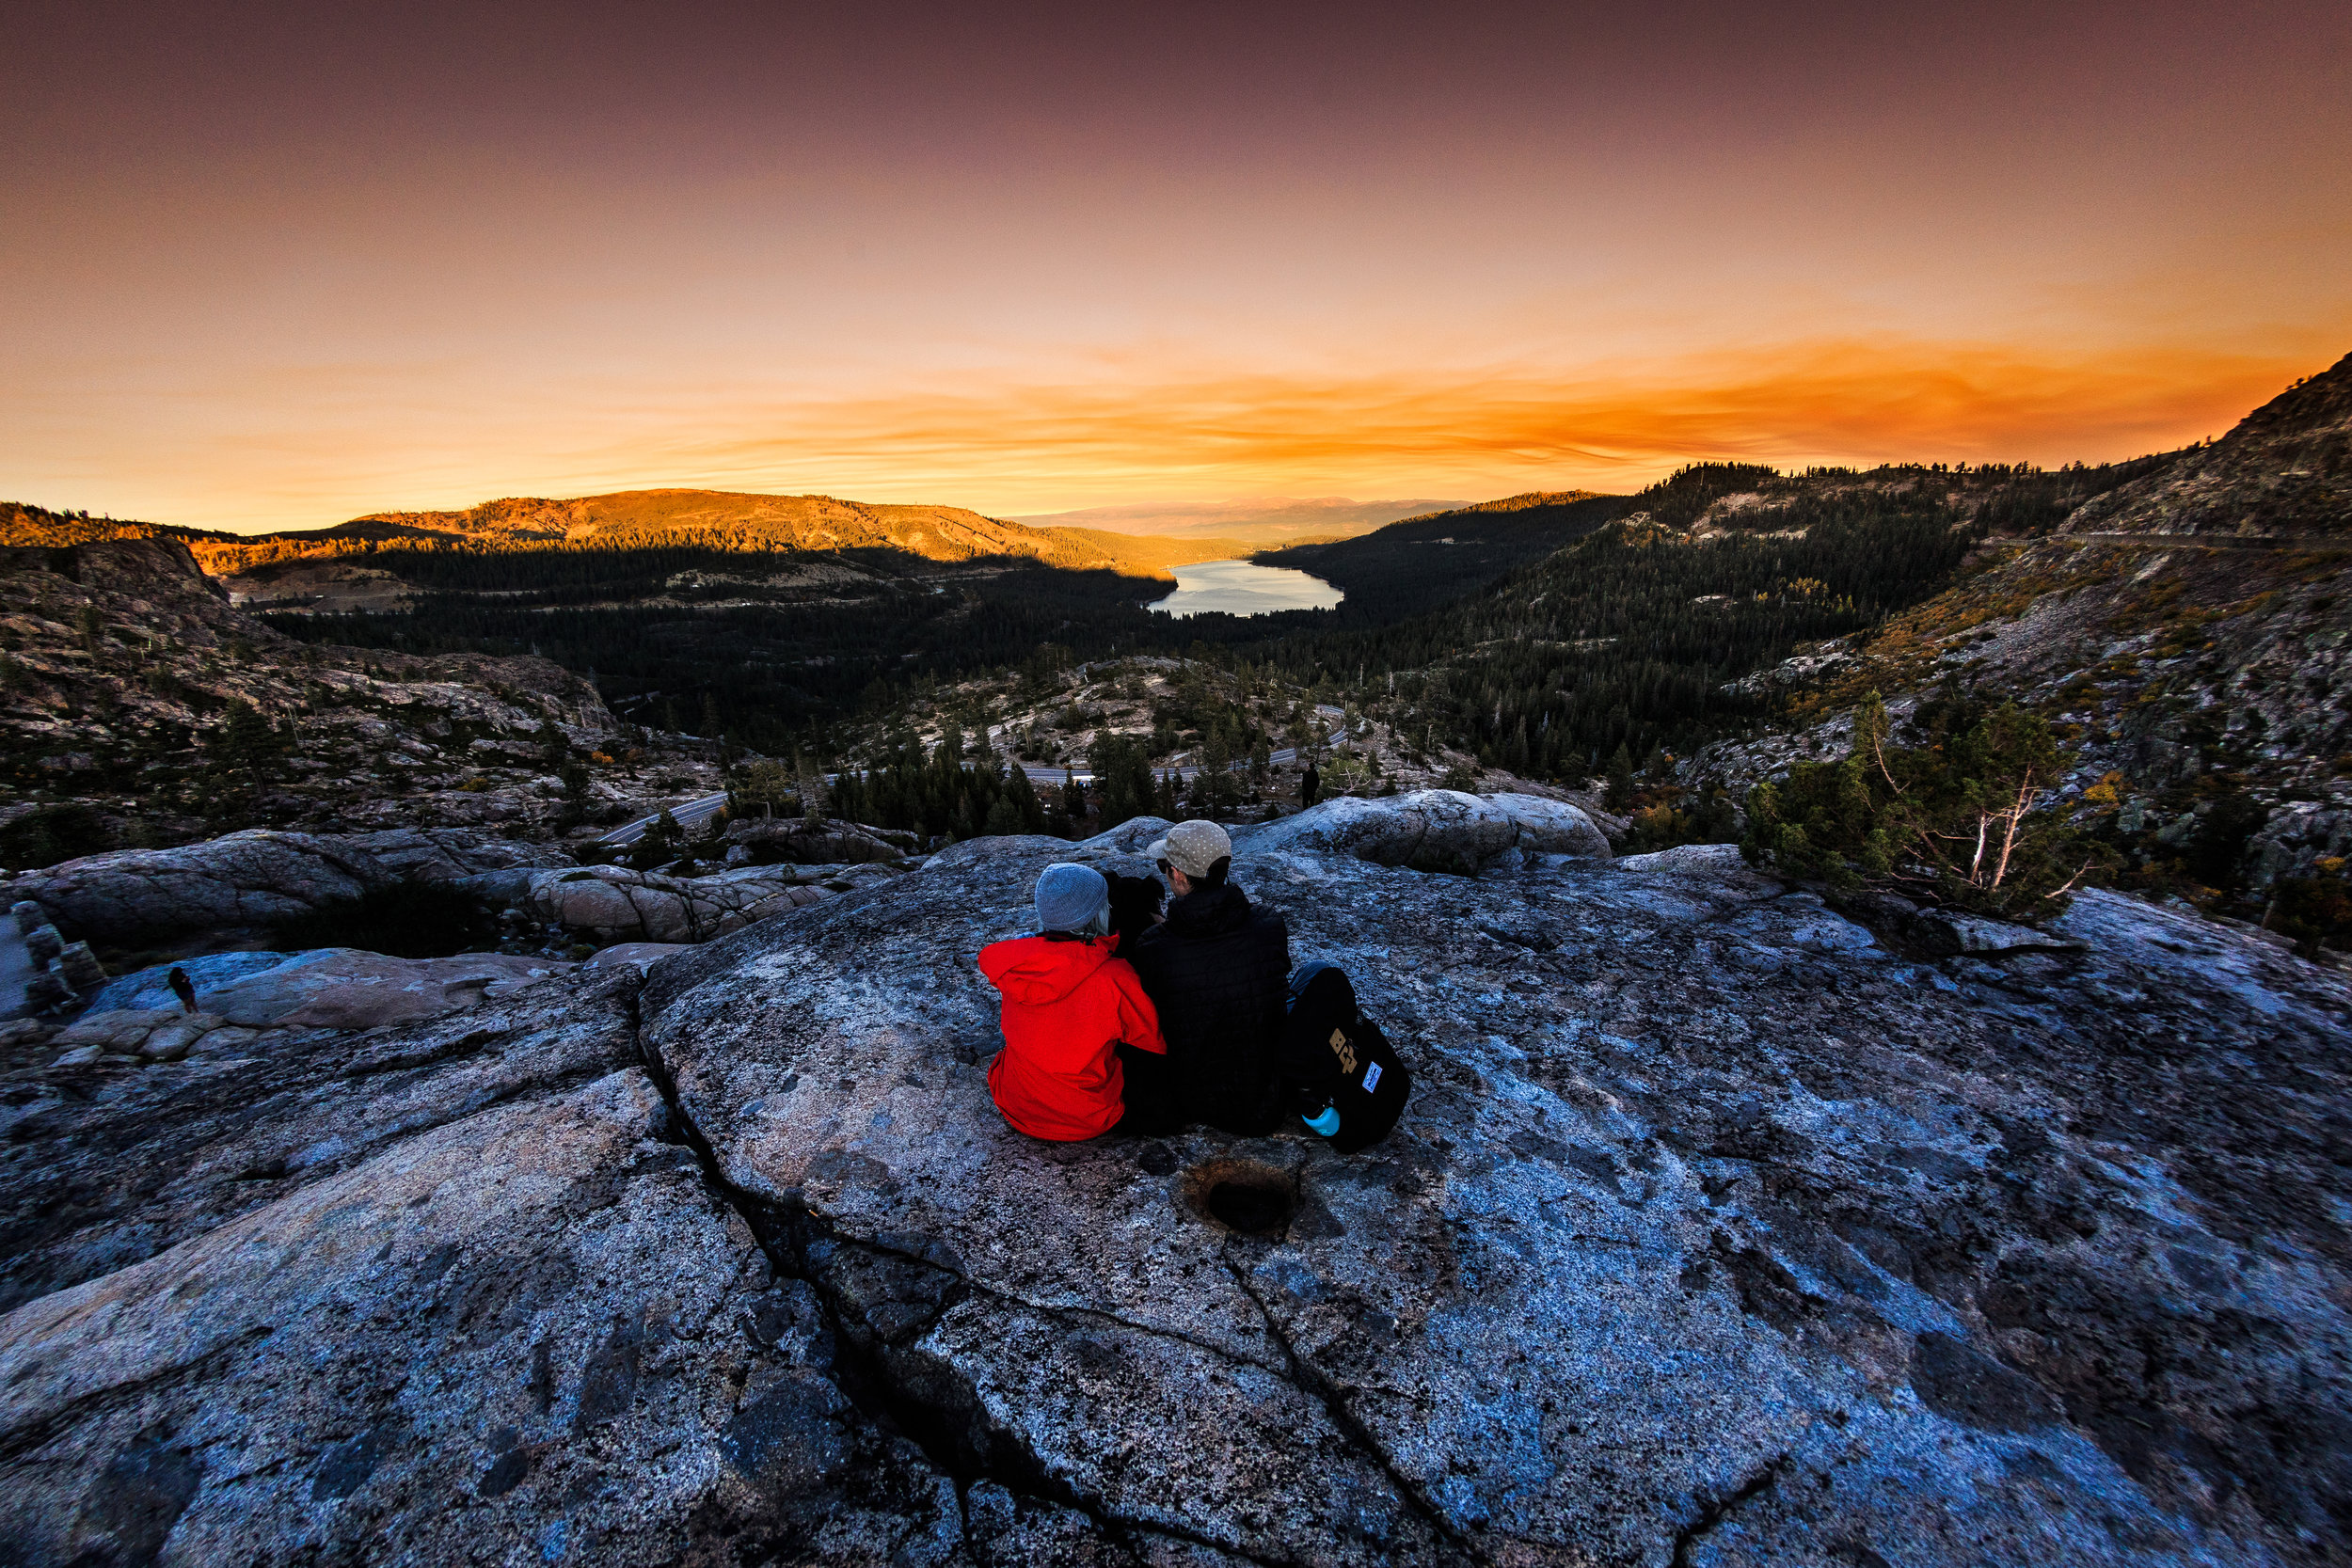 Overlooking a beautiful sunset on Donner Pass. 2017